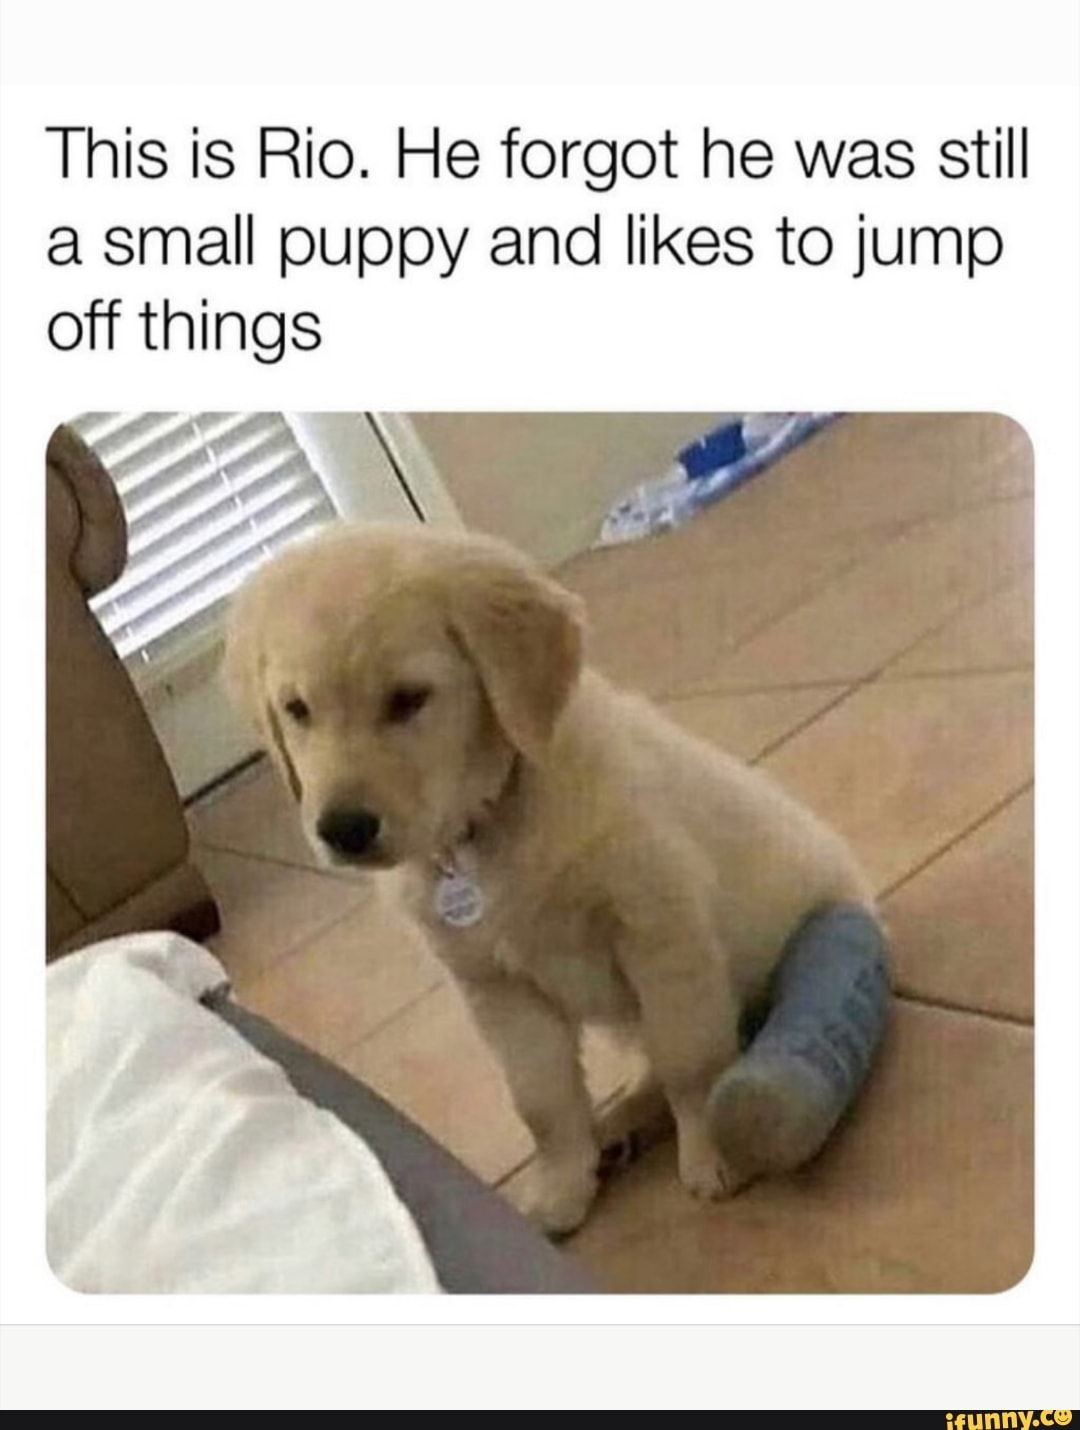 This Is Rio He Forgot He Was Still A Small Puppy And Likes To Jump Off Things Ifunny Baby Animals Funny Cute Animals Cute Baby Animals